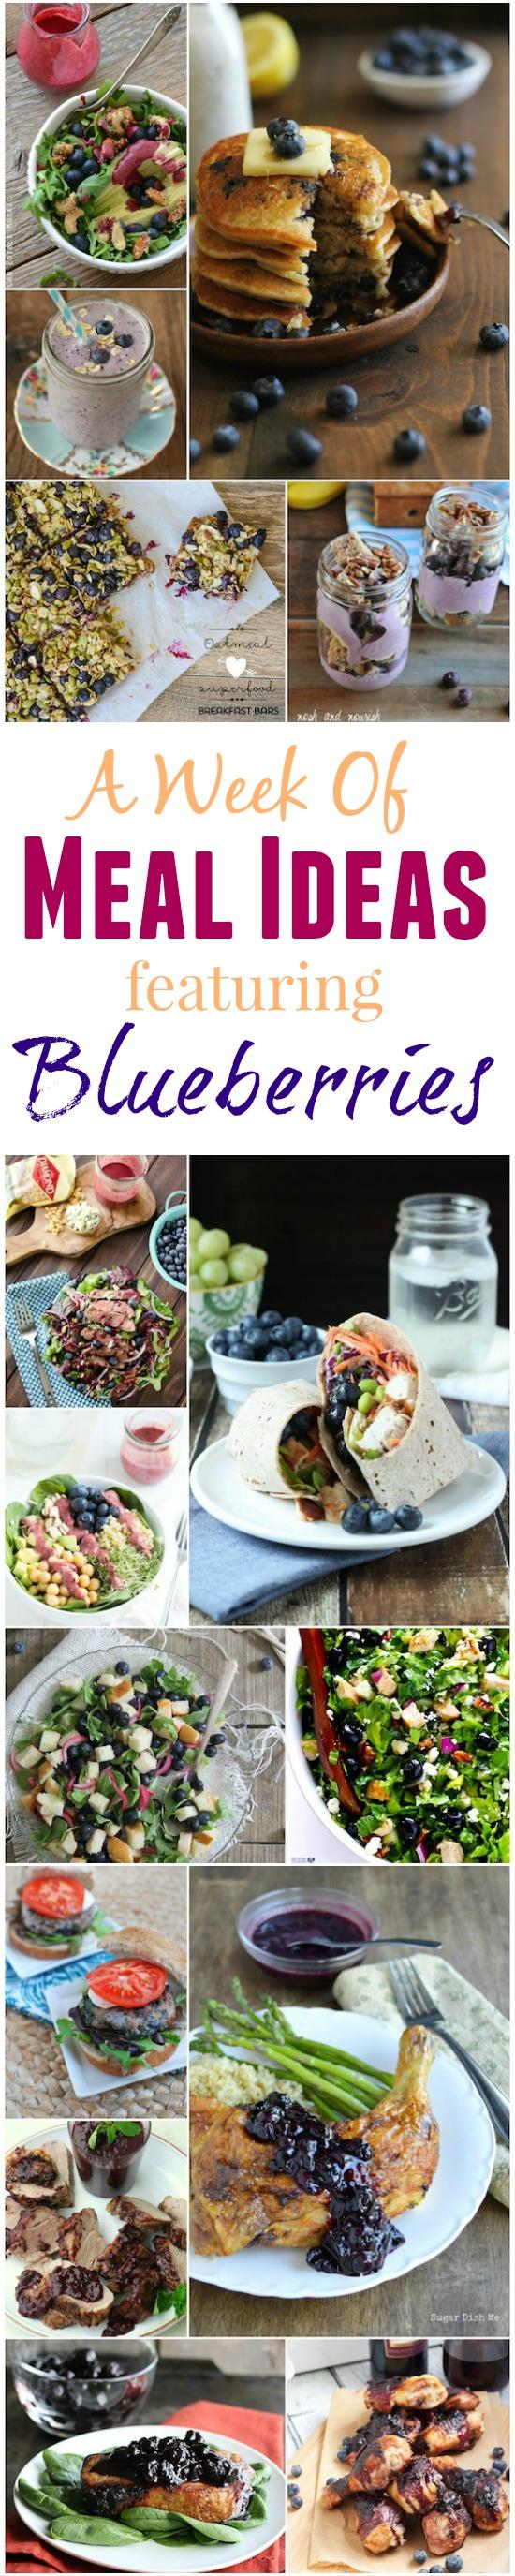 A week of meal ideas featuring blueberries! Recipes for breakfast, lunch, dinner, snack and dessert!